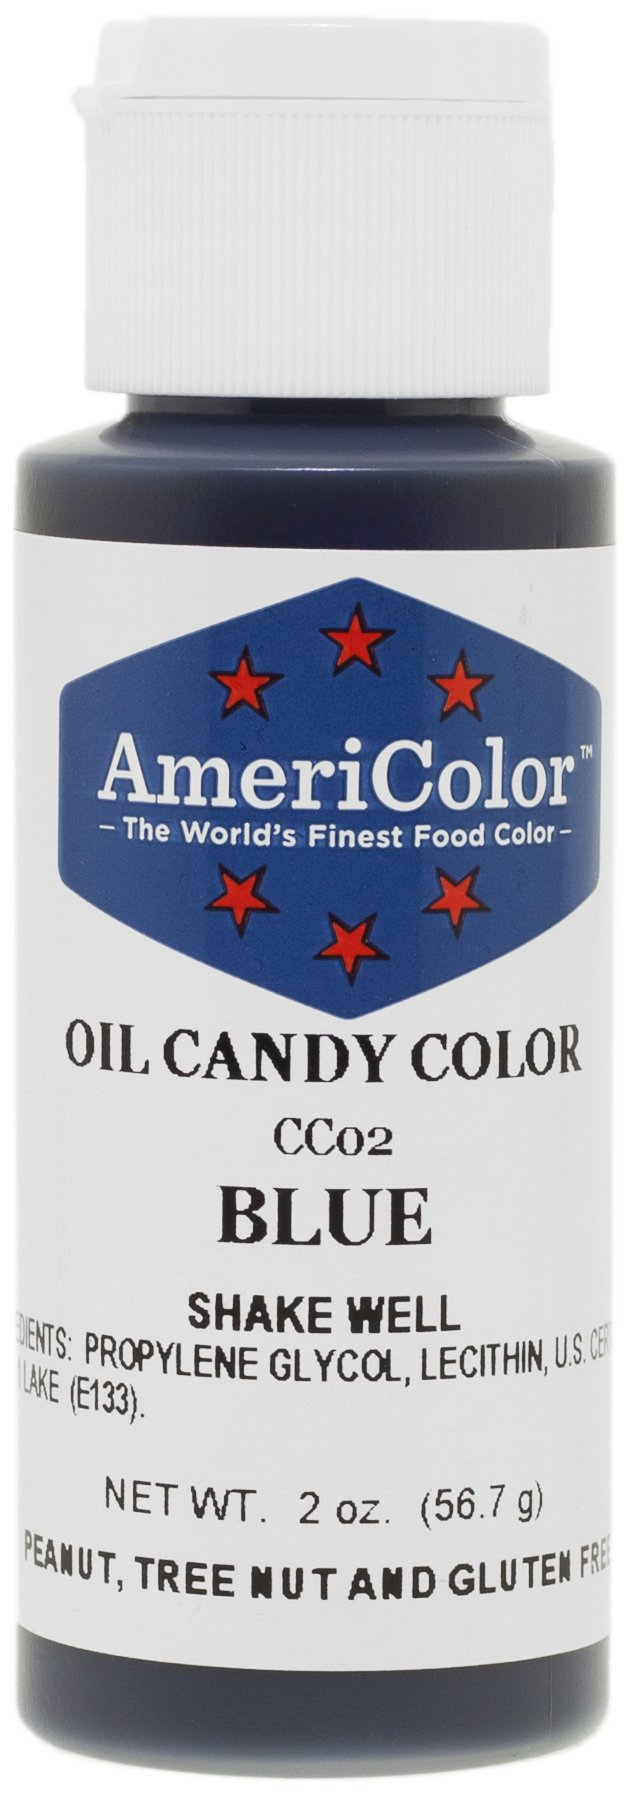 Americolor Candy Oil - BLUE 2 OUNCE CANDY OIL COLOR